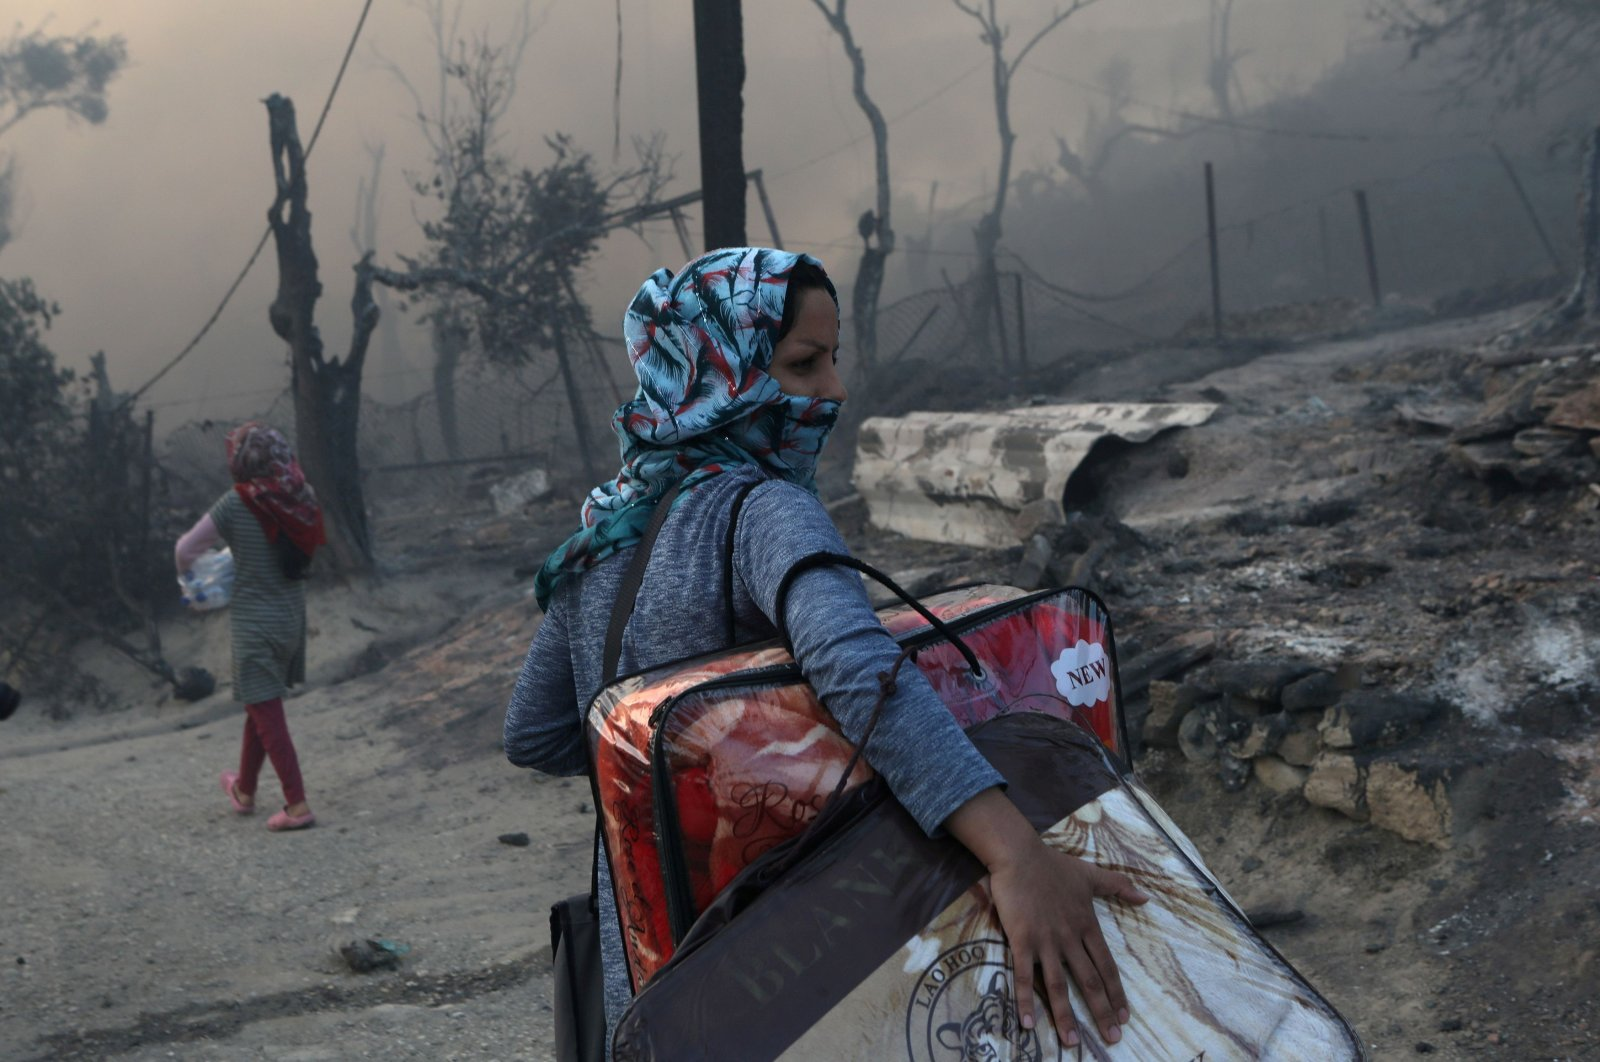 A migrant carries her belongings following a fire at the Moria camp for refugees and migrants on the island of Lesbos, Greece, Sept. 9, 2020. (Reuters Photo)